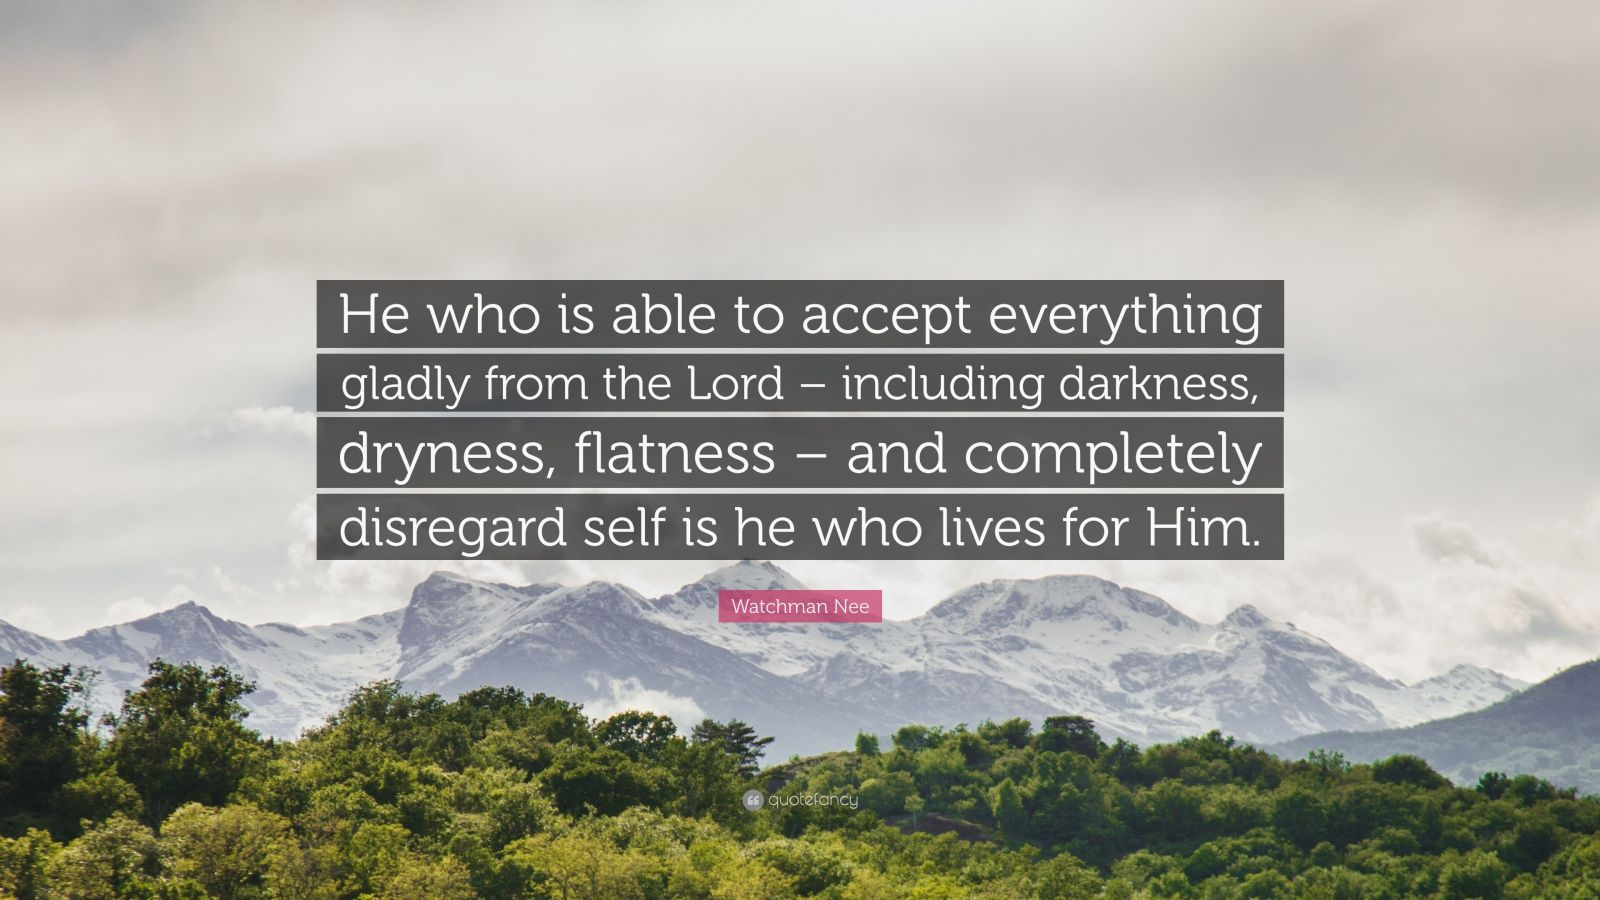 """Watchman Nee Quote: """"He who is able to accept everything gladly from the Lord – including darkness, dryness, flatness – and completely disregard self is he who lives for Him."""""""